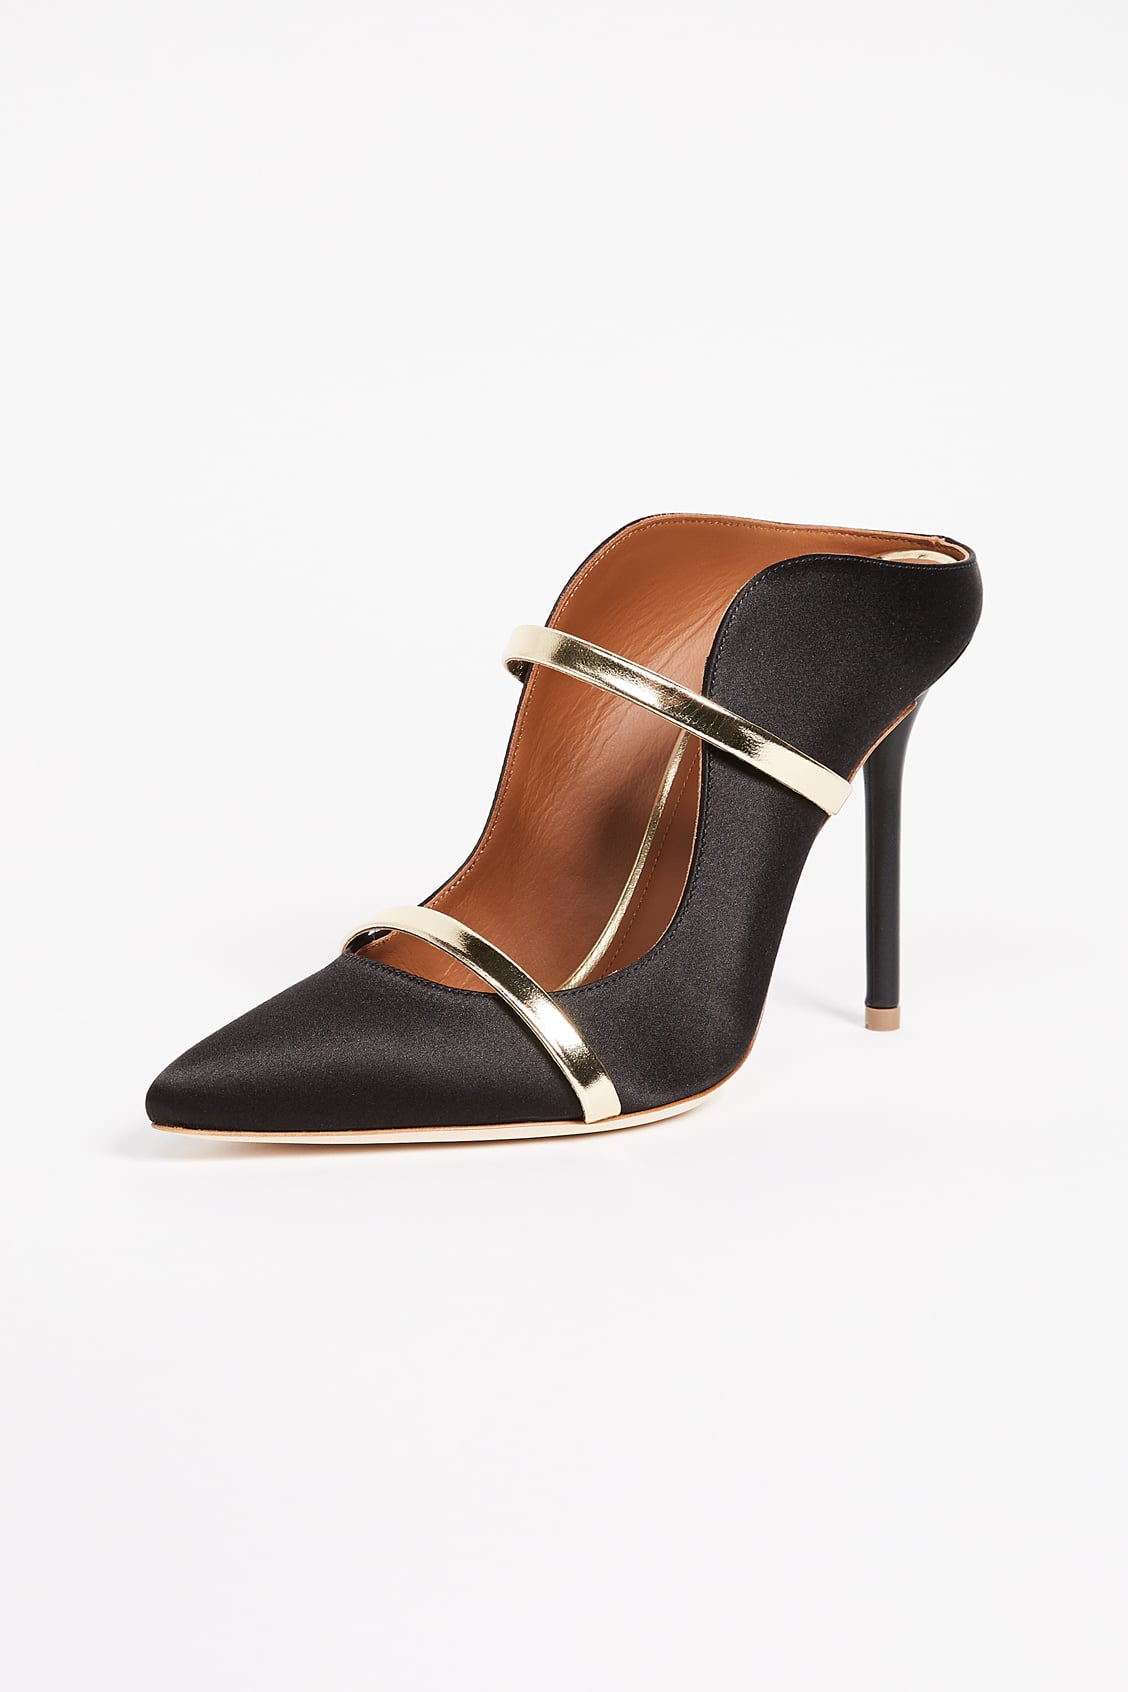 Malone Souliers   These Are the Most